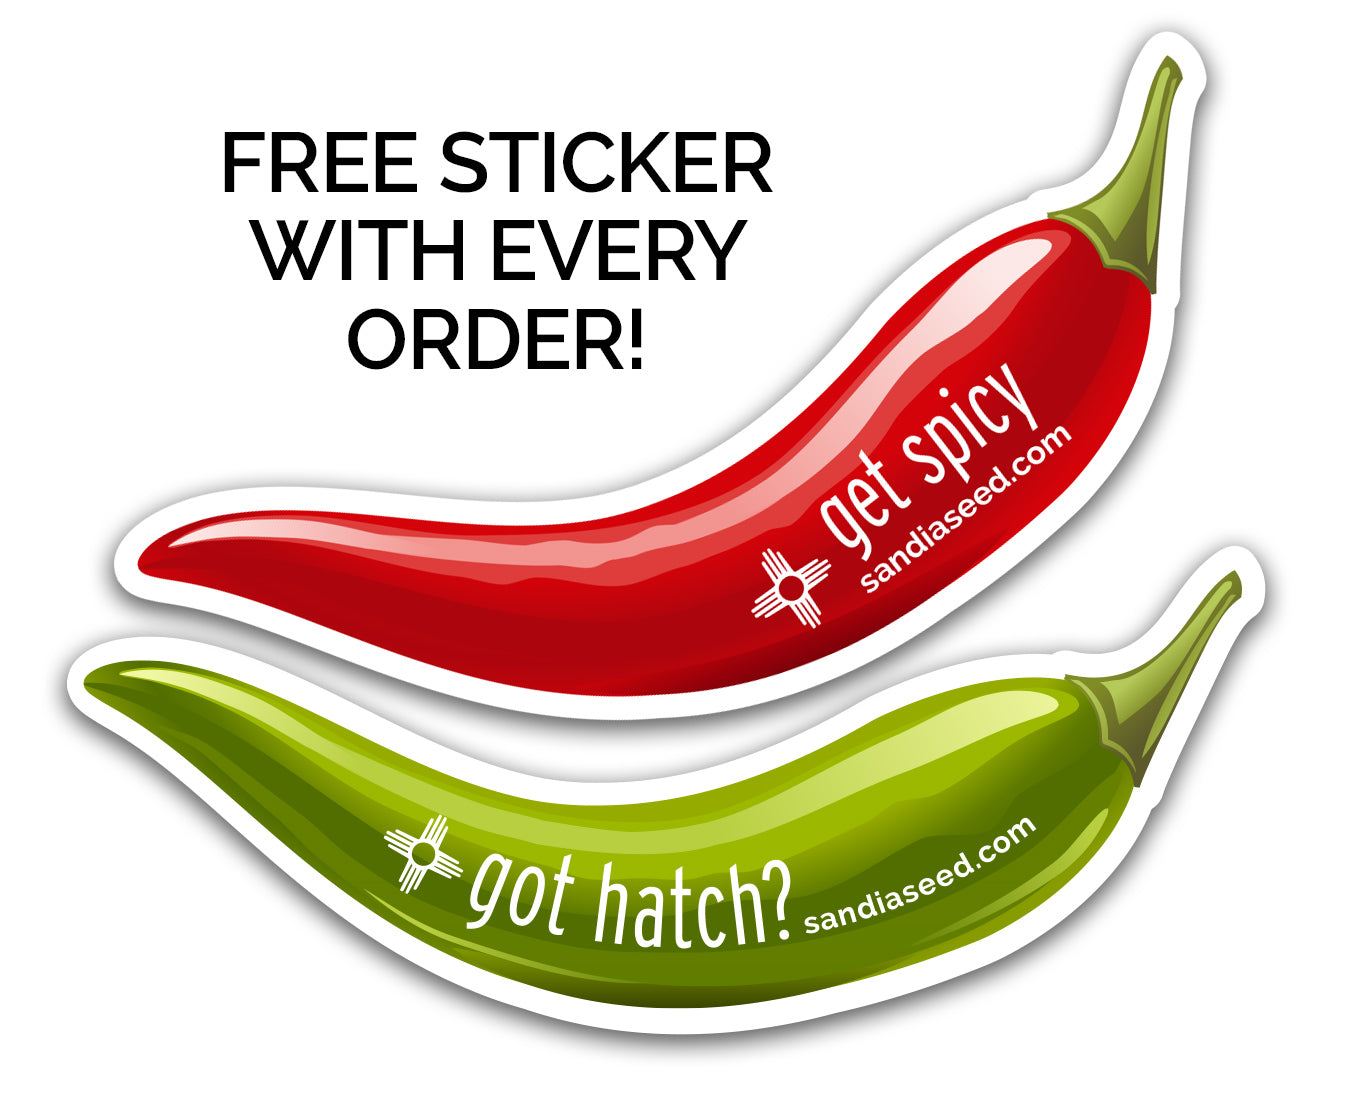 Chilli Stickers from SandiaSeed.com